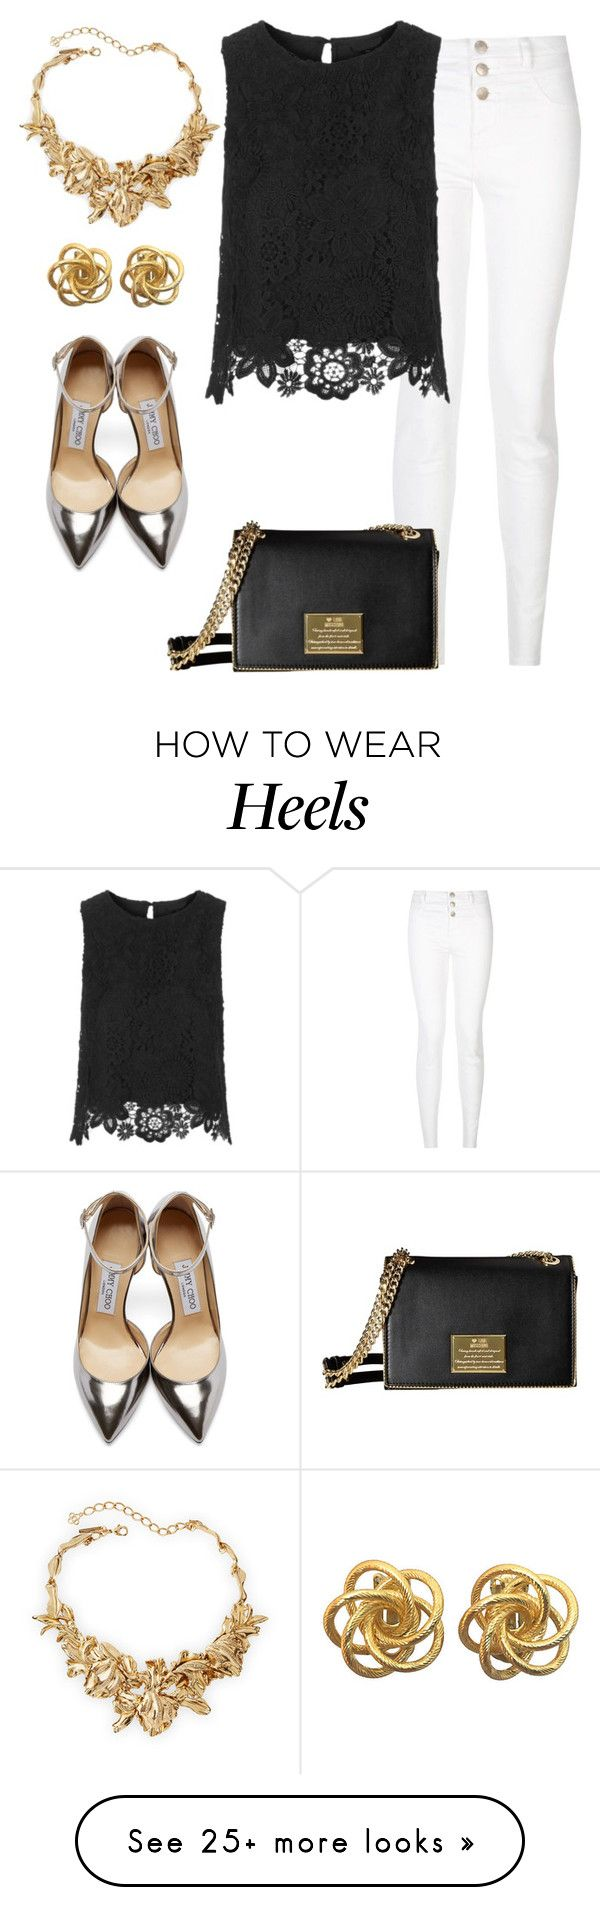 """Lunch meetings"" by burtiva on Polyvore featuring Jimmy Choo, Oscar de la Renta, women's clothing, women's fashion, women, female, woman, misses, juniors and gold"